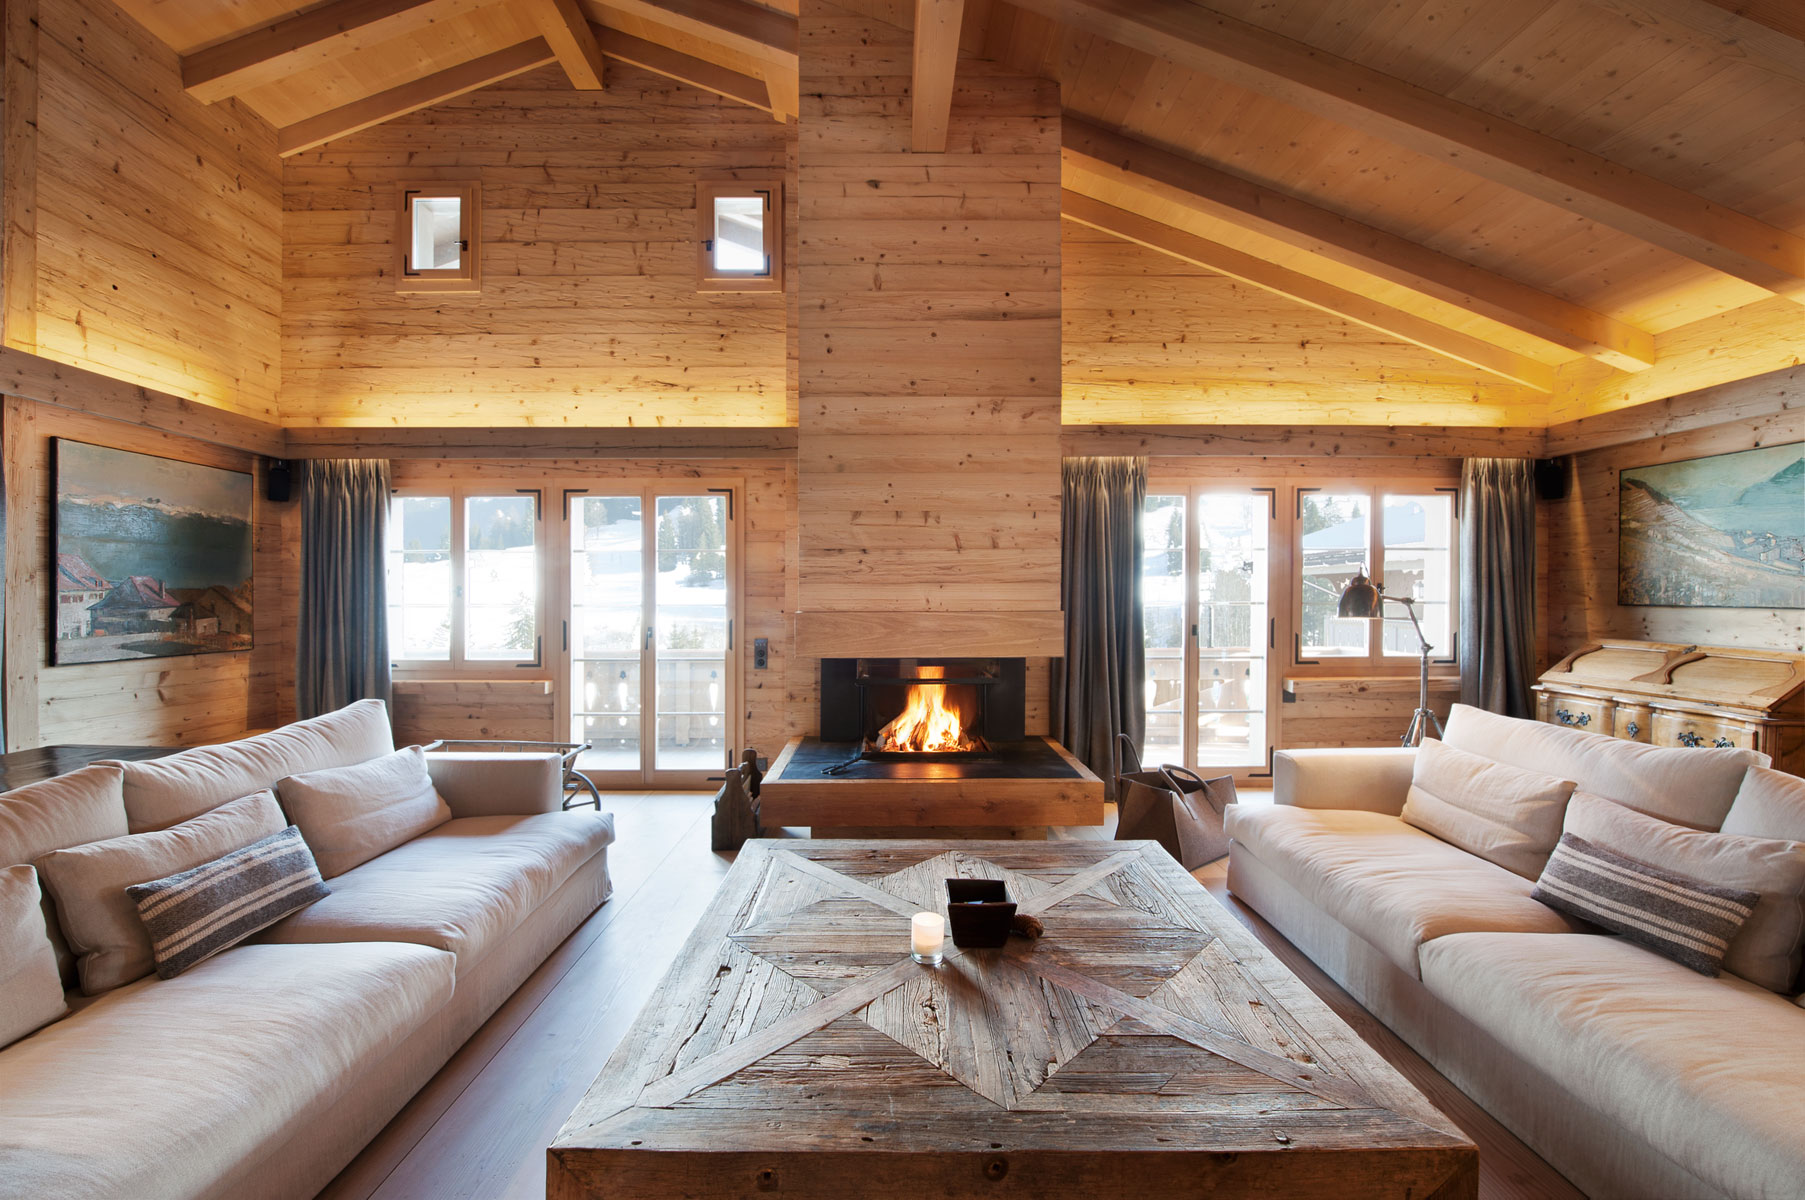 Chalet gstaad switzerland for Amenagement interieur chalet